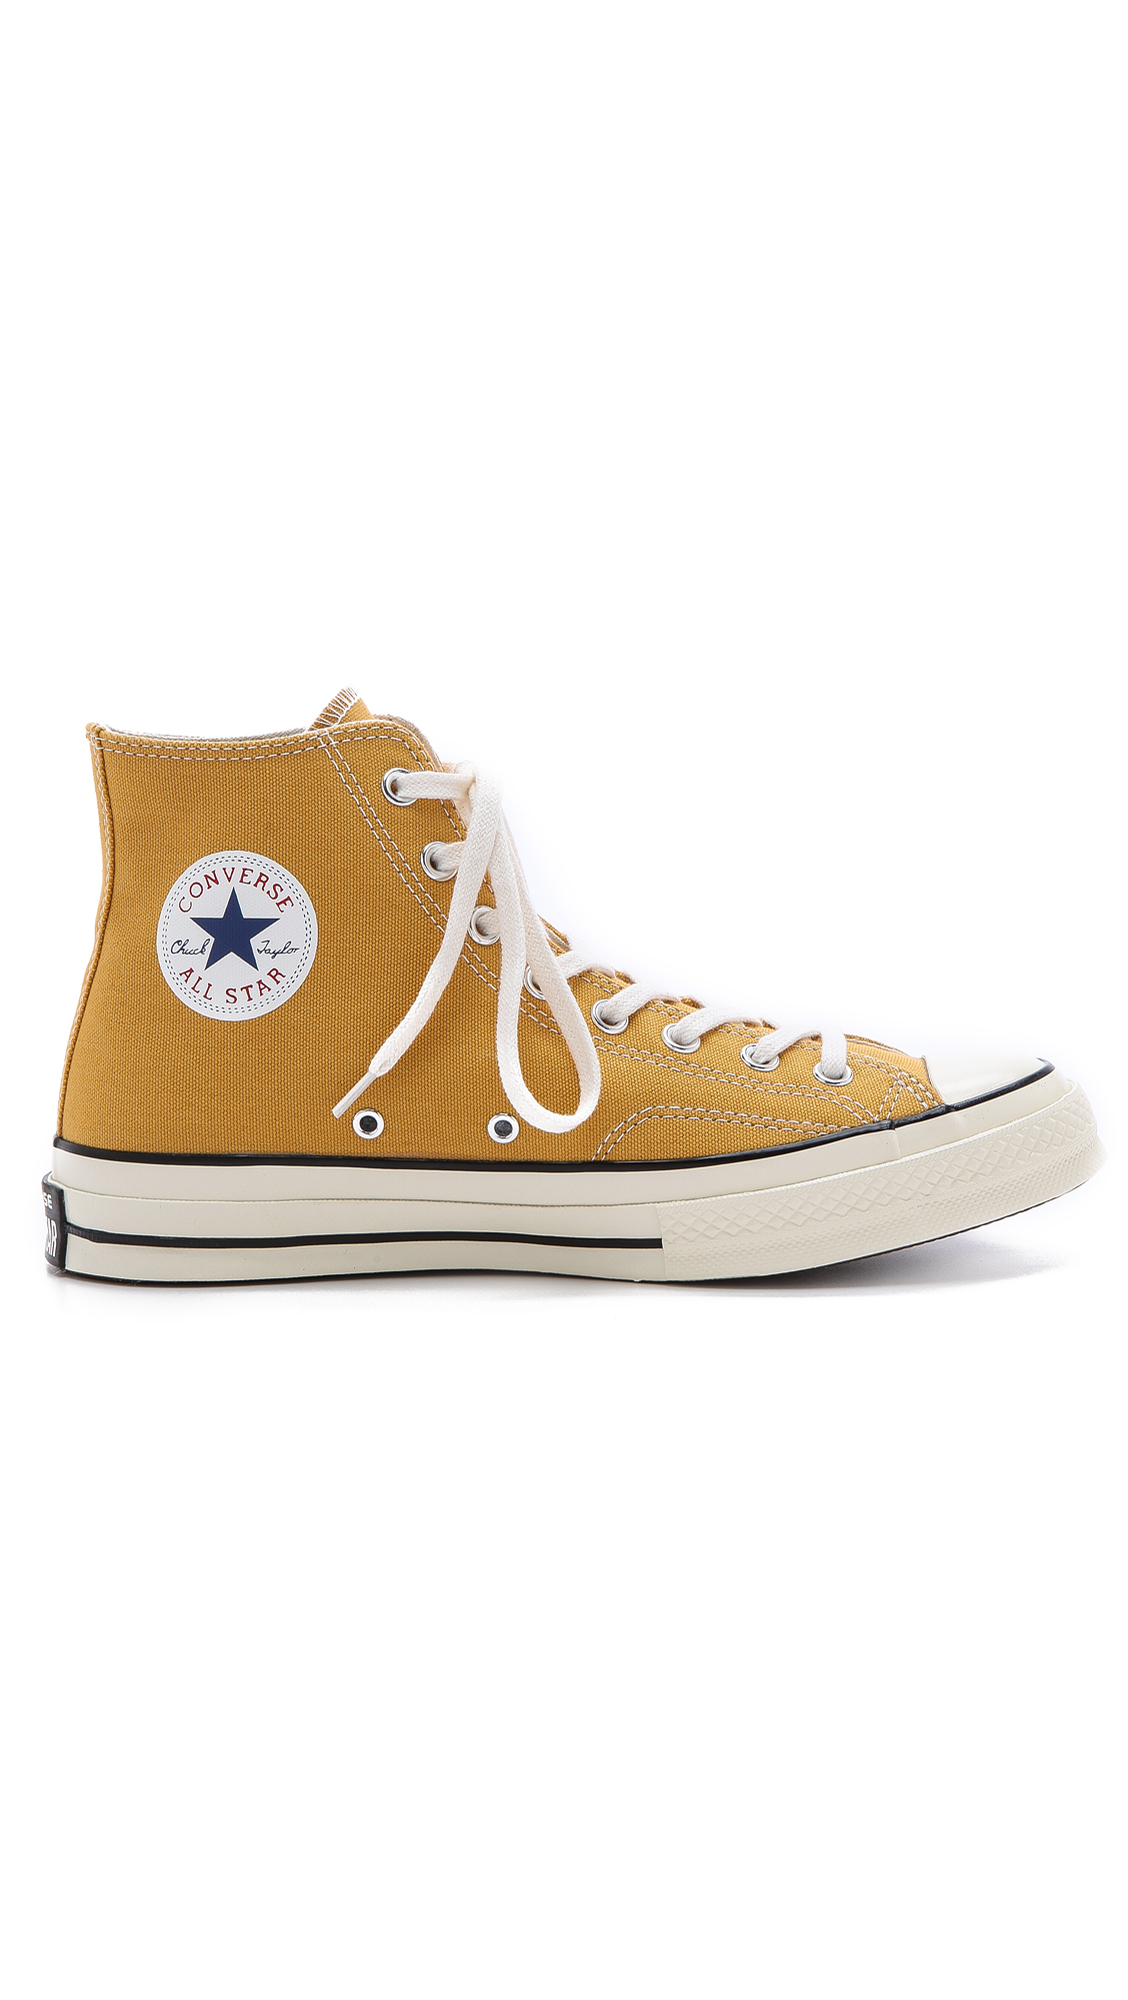 Lyst Converse All Star 70s High Top Sneakers In Yellow